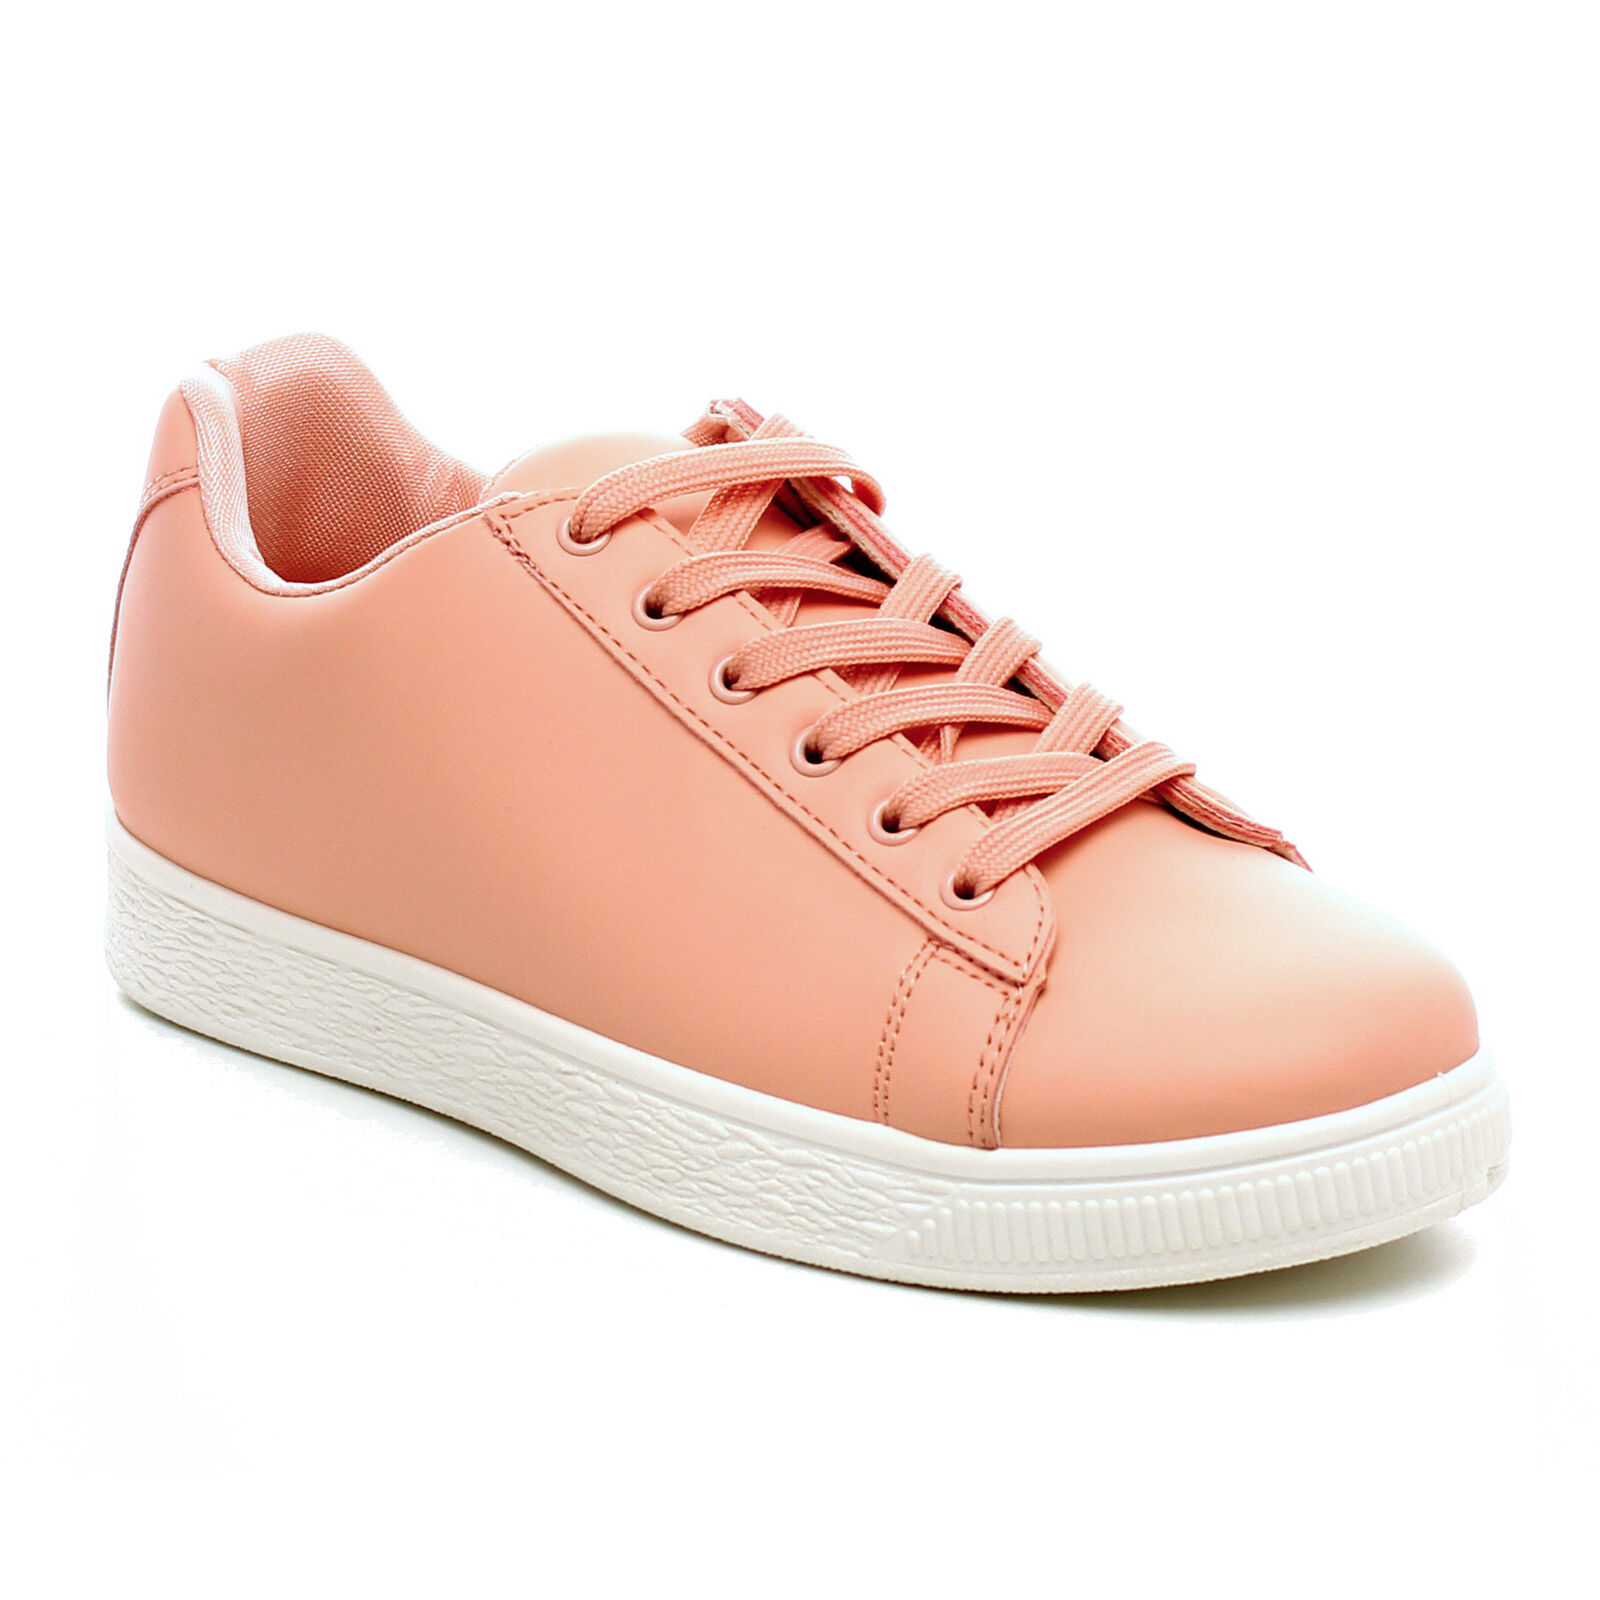 Women Fashion Sneakers Lace up Faux Leather Athletic Shoes Sports  Running Shoes